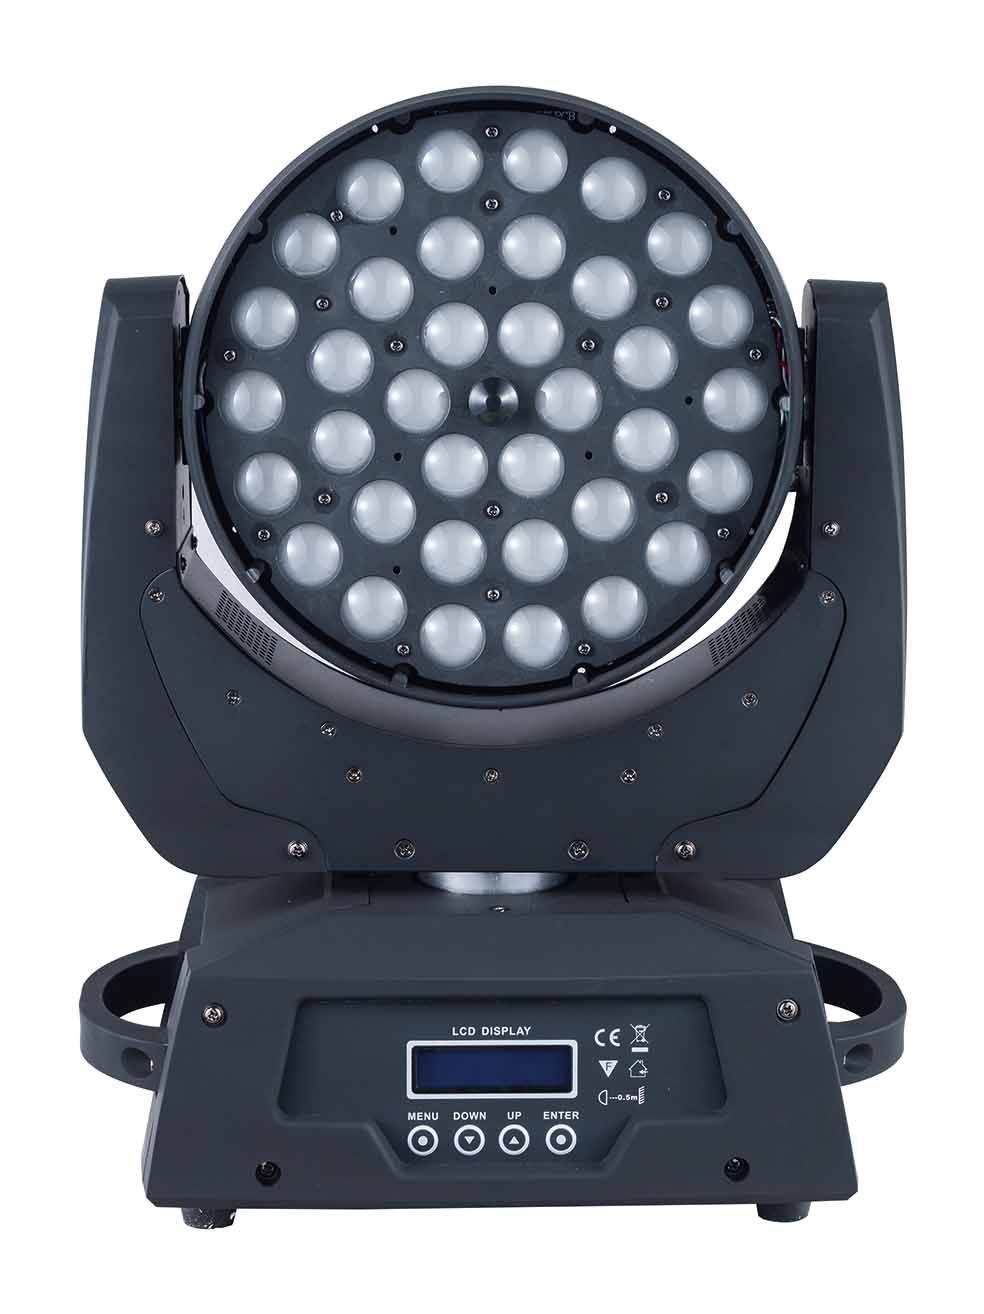 2PCS/lot high brightness 36*18W 6 IN 1 RGBWY+UV LED zoom moving head wash light with flight case dmx dj equpment for bar